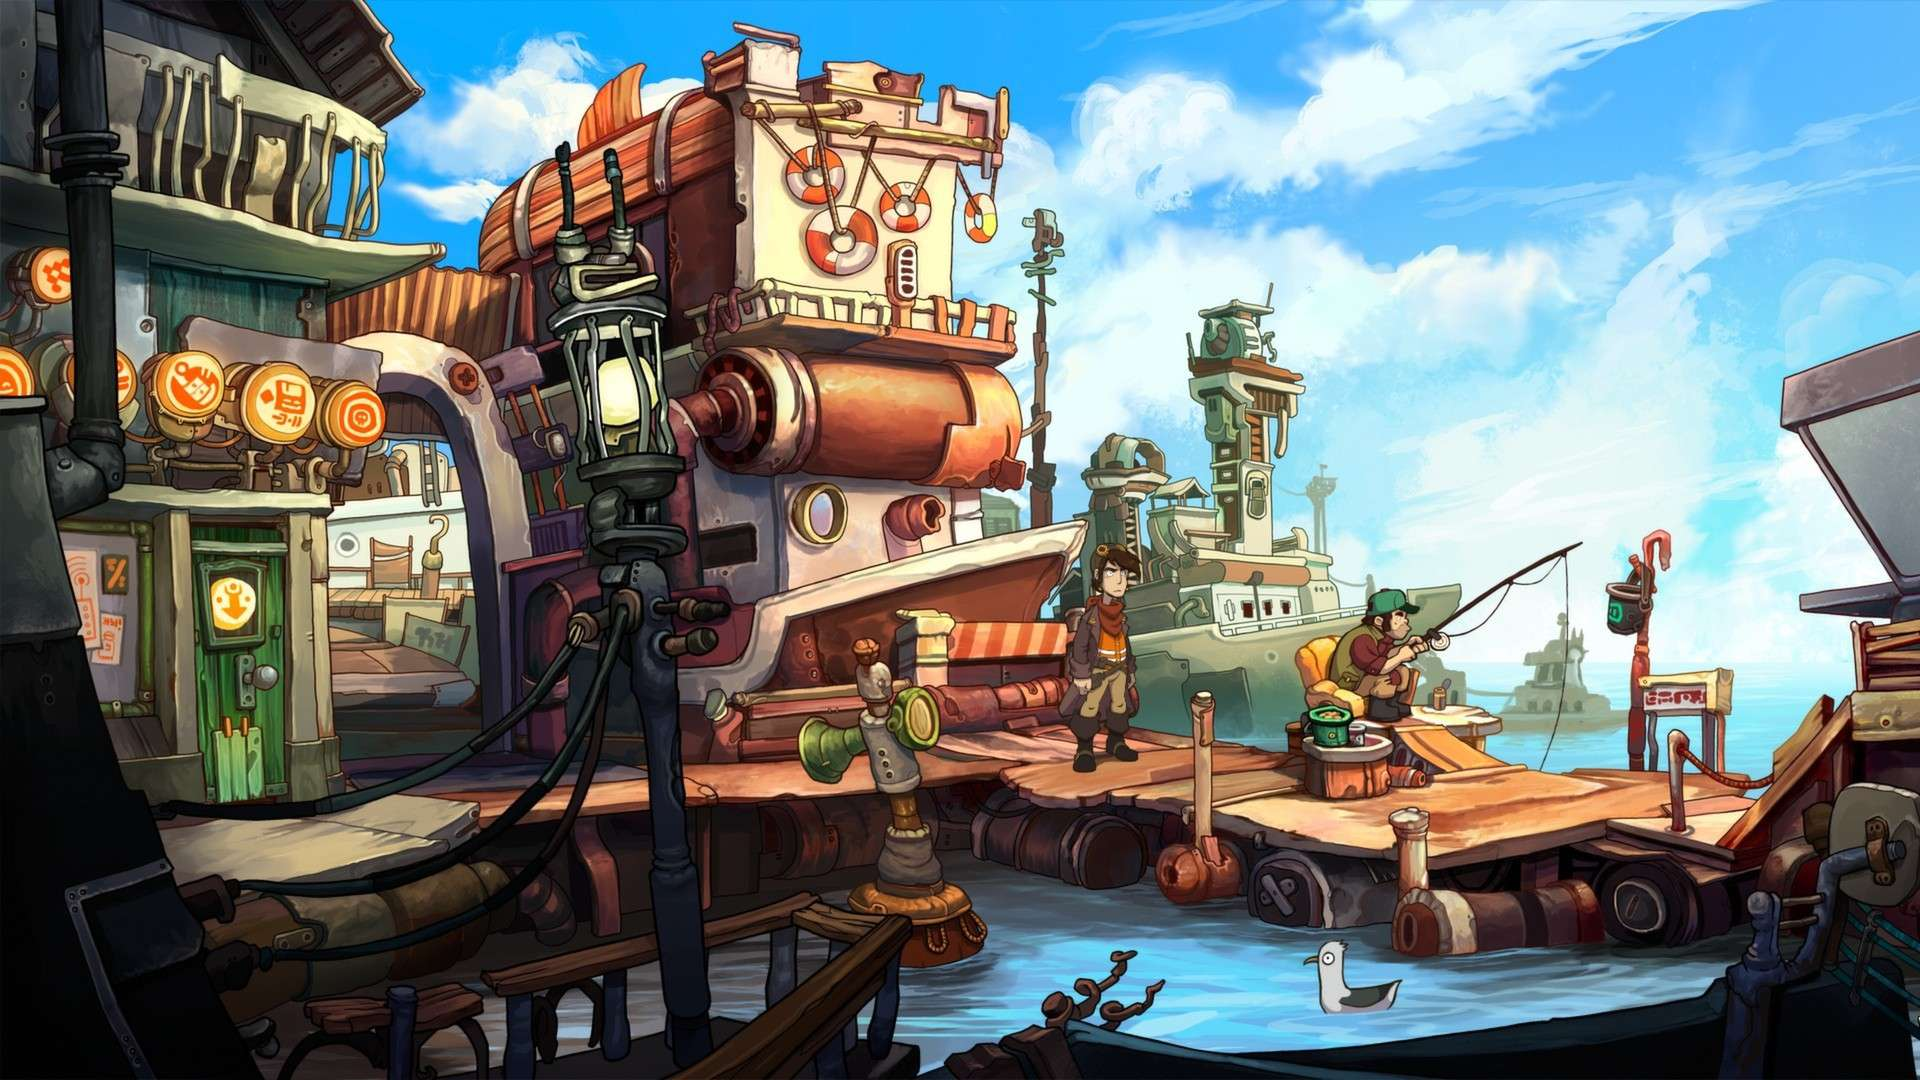 Chaos on Deponia #1